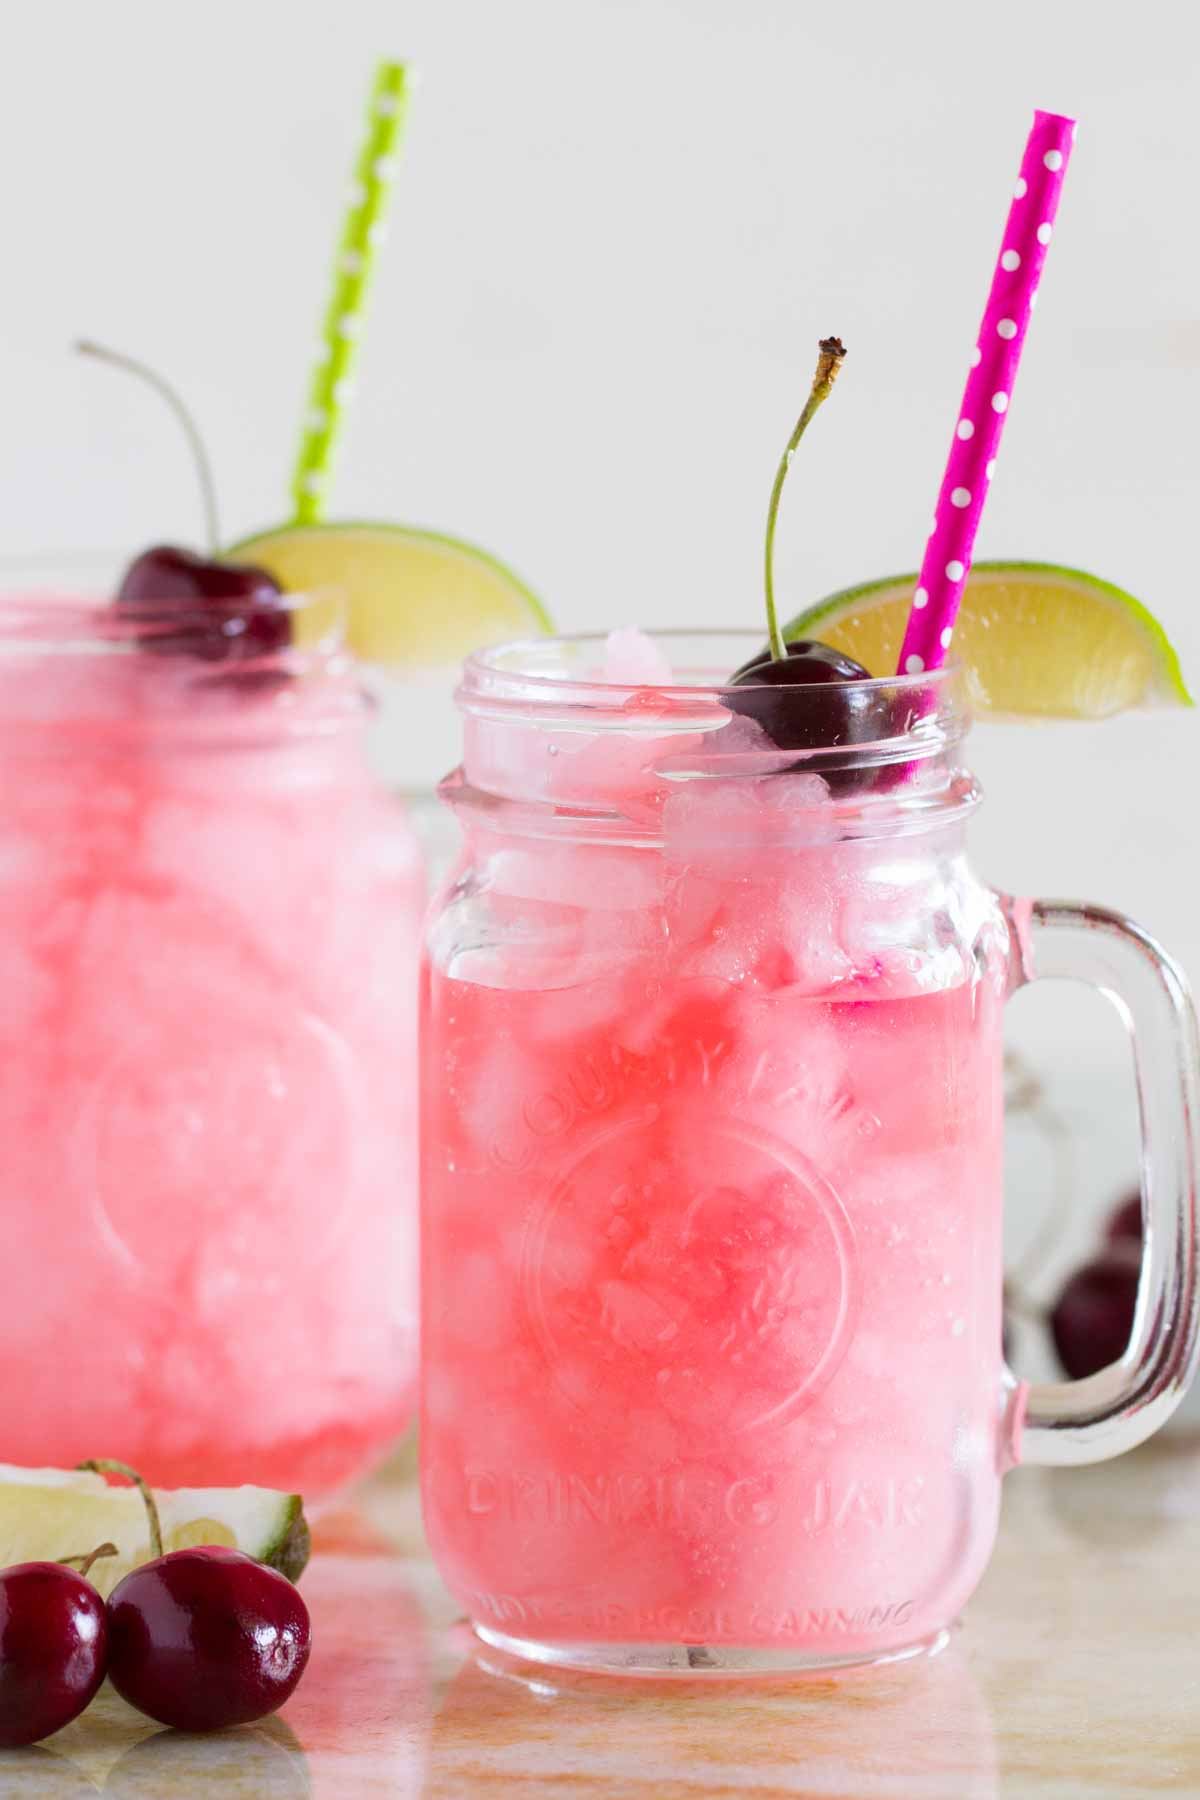 homemade slurpees in glasses with lime slices, cherries and straws